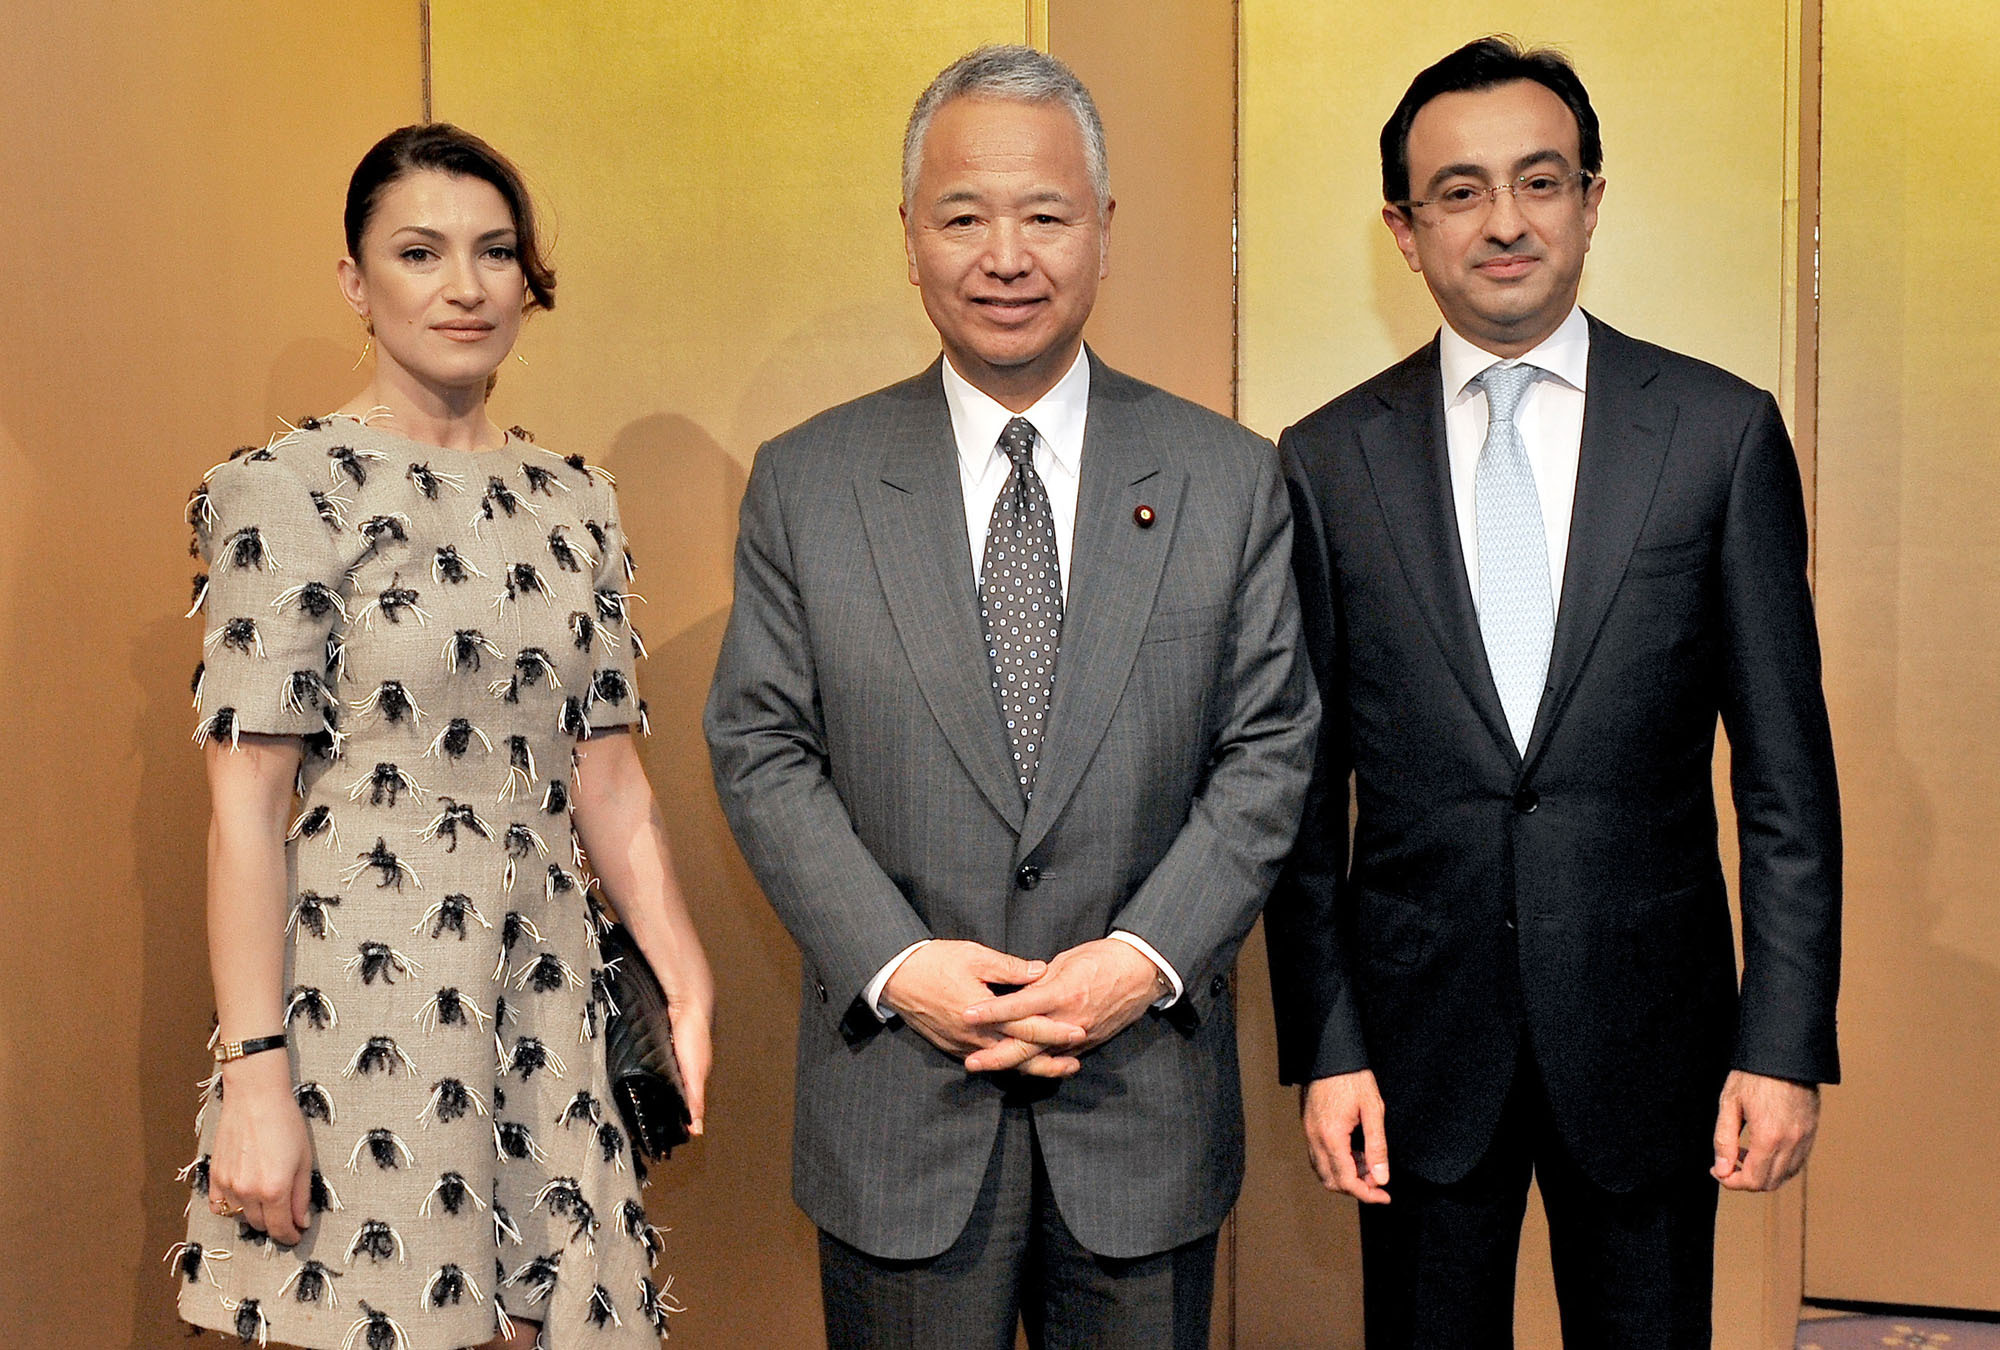 Azerbaijan Ambassador Gursel Ismayilzada (right) and his wife, Rana, welcome Japan-Azerbaijan Parliamentary Friendship League Chairman Akira Amari during a reception at Hotel Okura Tokyo on May 25 to celebrate the 25th anniversary of the establishment of diplomatic relations between Japan and Azerbaijan. |  YOSHIAKI MIURA